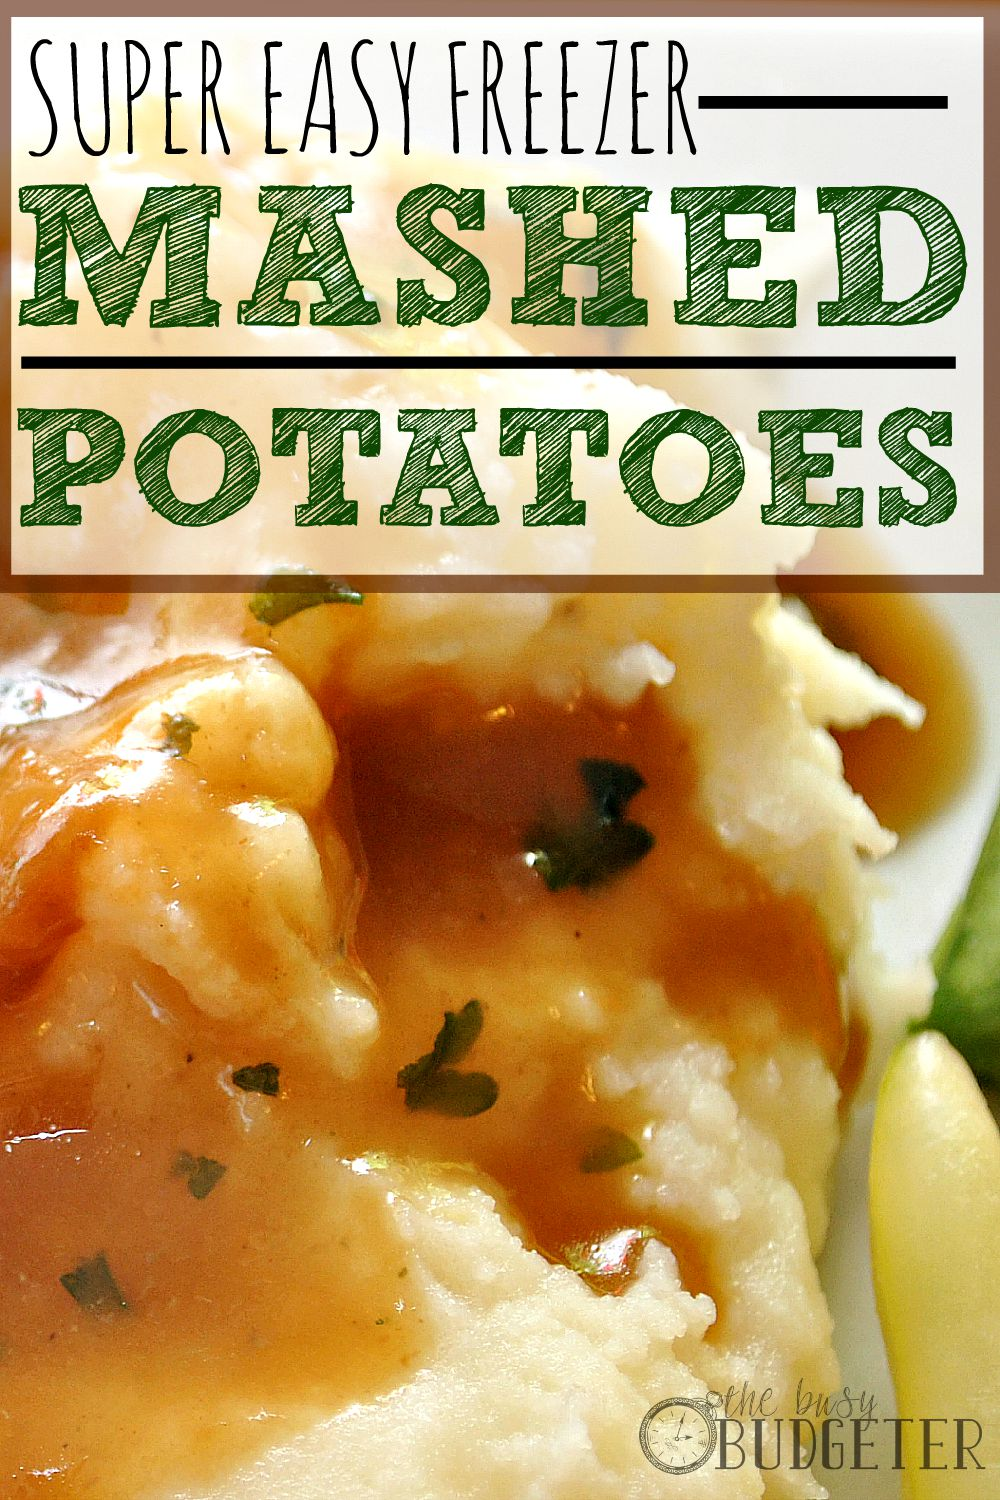 Super Easy Freezer Mashed Potatoes: Yes! I loooooooove mashed potatoes and this is even cheaper and easier than my go-to recipe. I'm totally making these this weekend and freezing some for later!